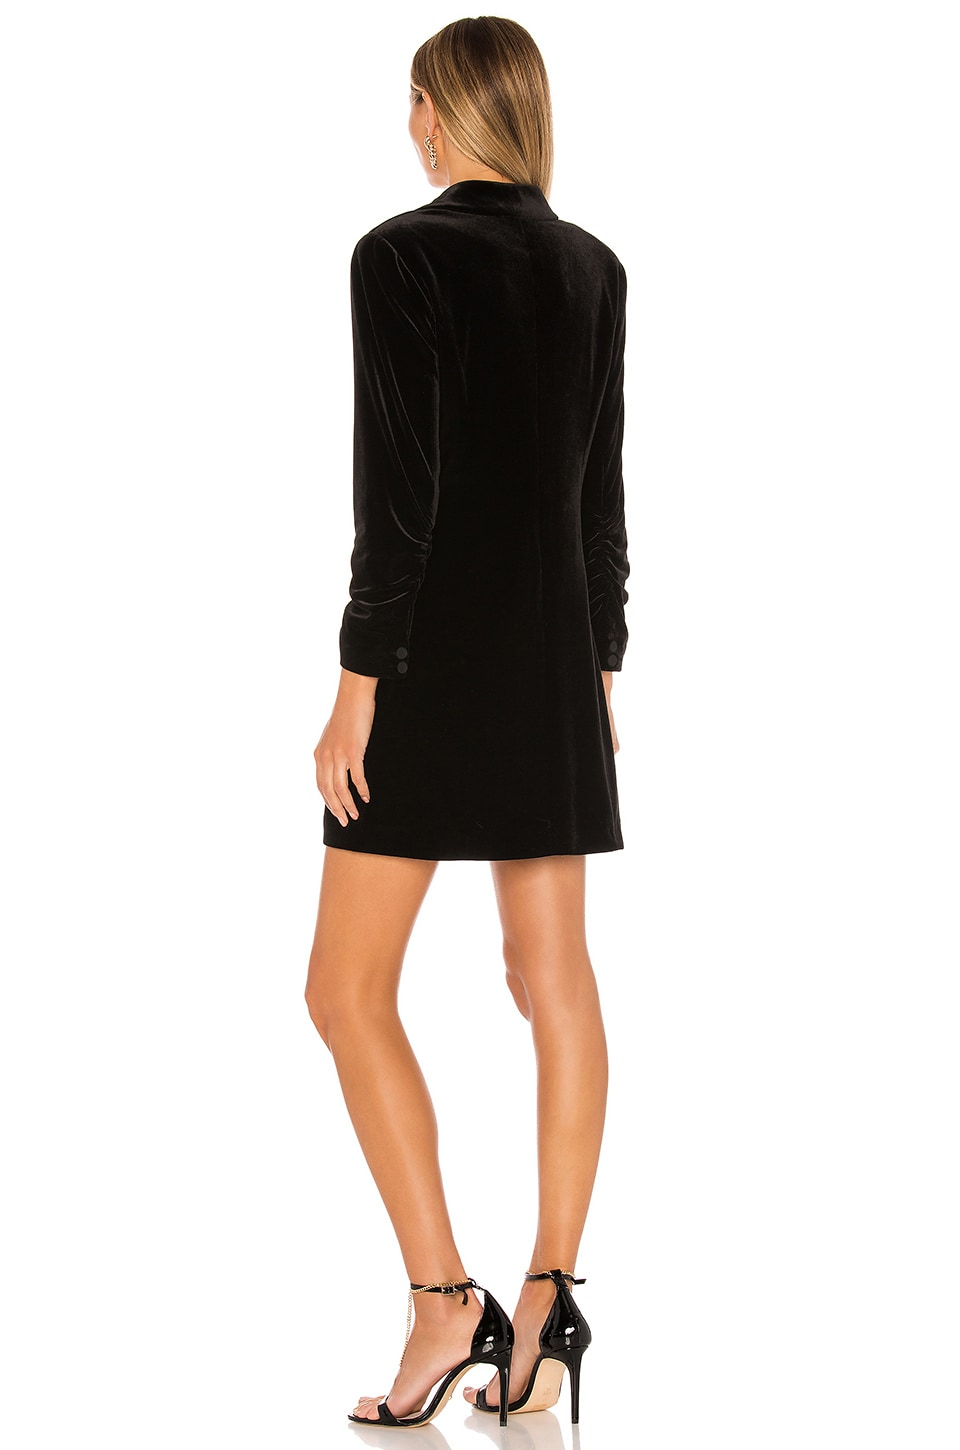 Ruched Velvet Blazer Dress, view 3, click to view large image.